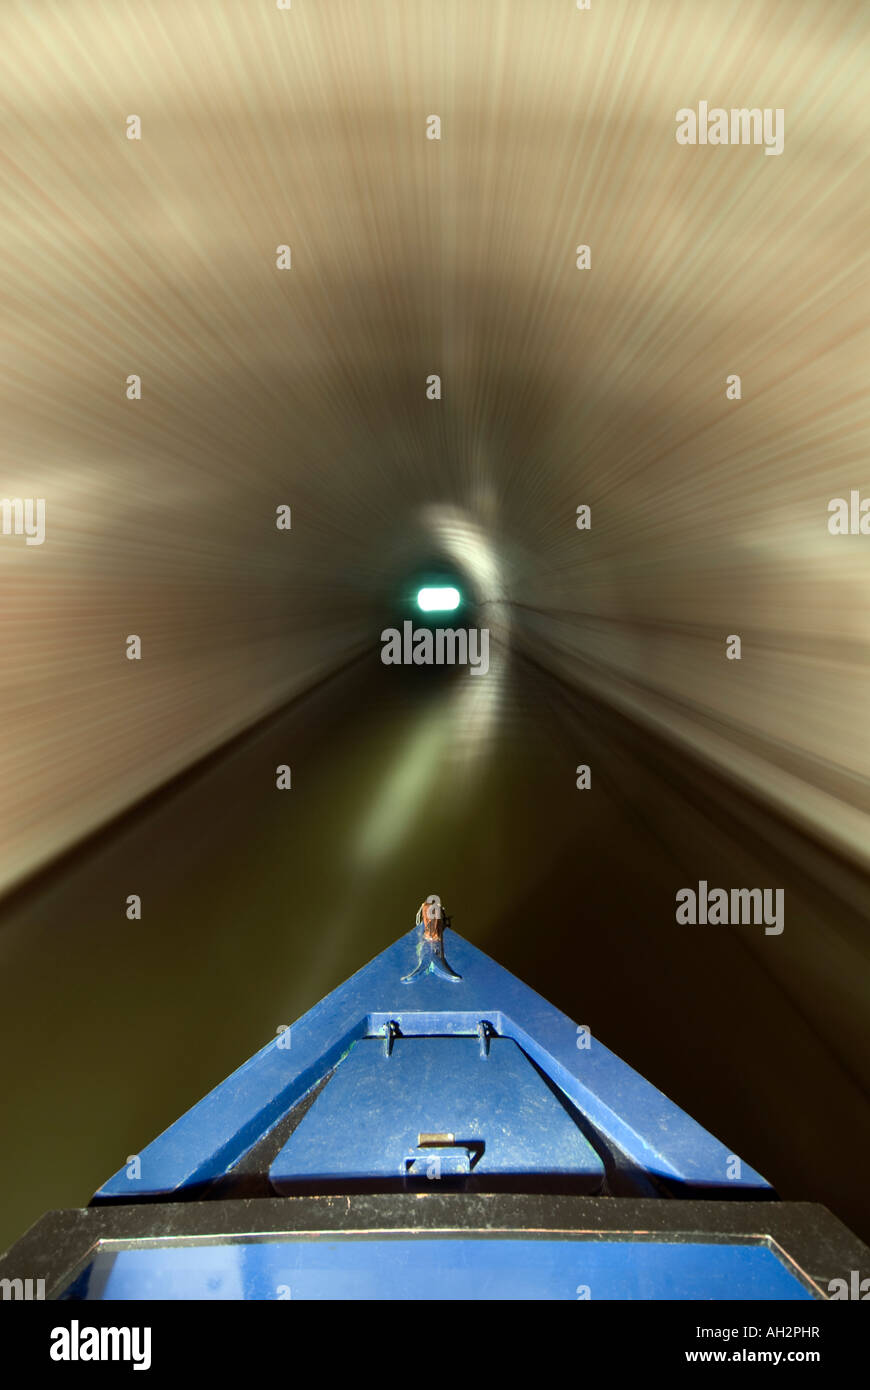 Narrowboat navigating along the English canal system - Stock Image